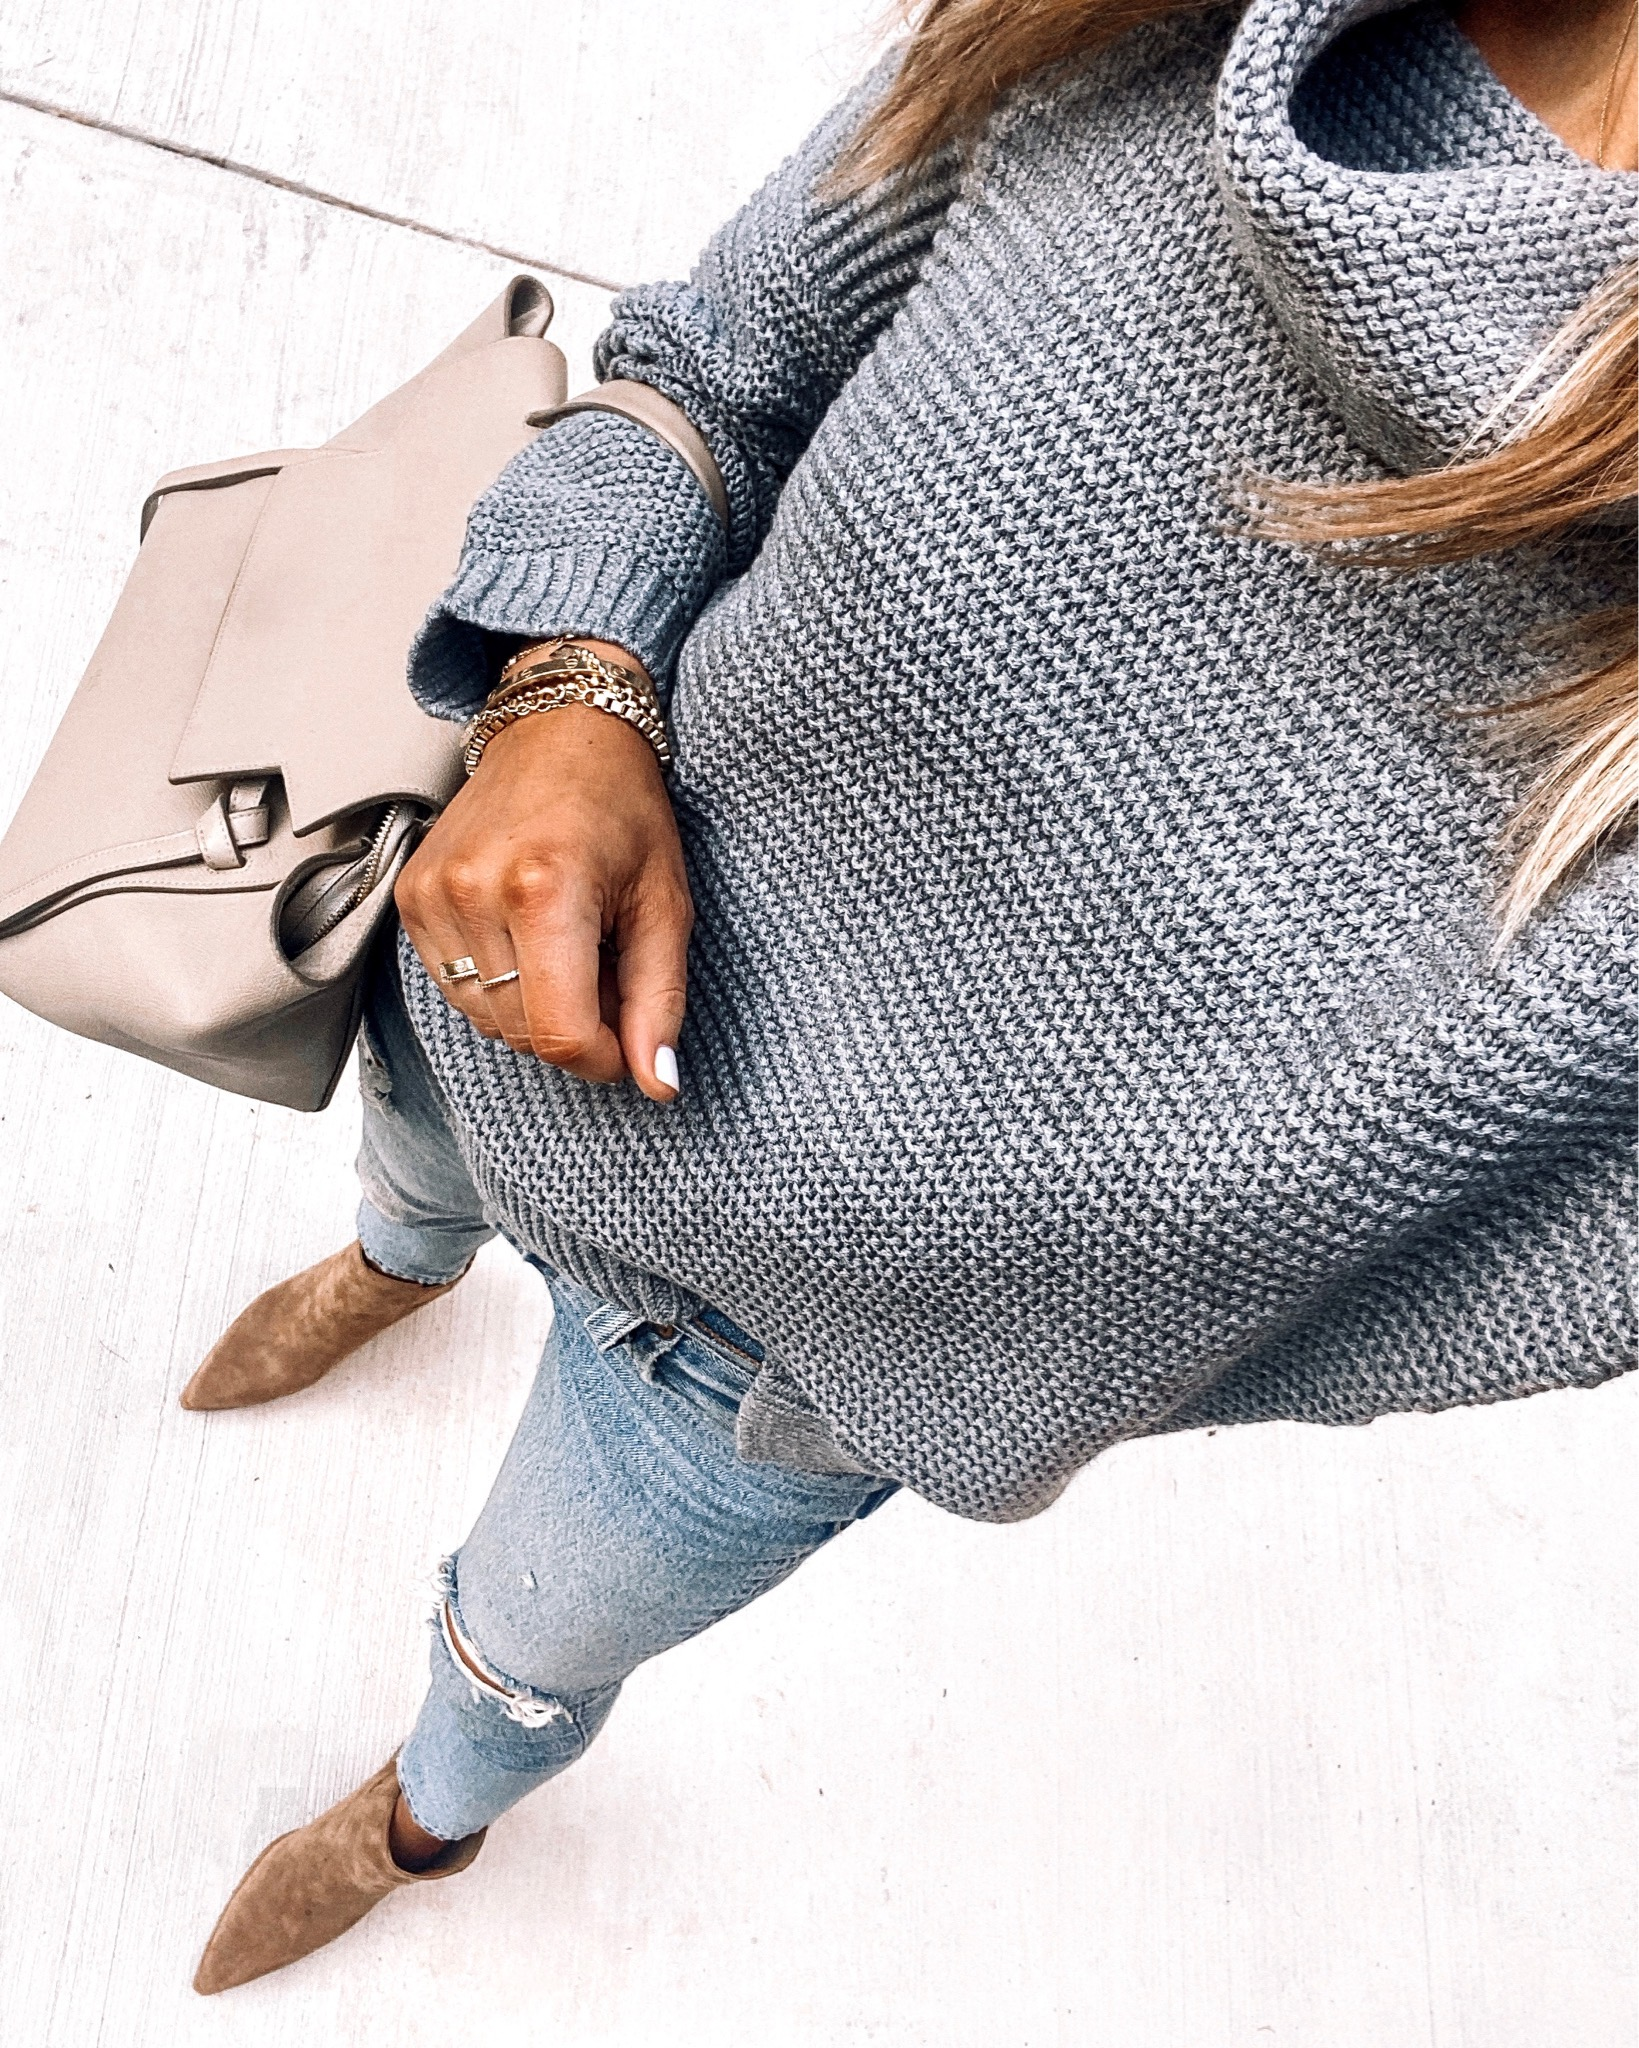 Fashion Jackson Amazon Fashion Grey Sweater Ripped Jeans Cognac Booties